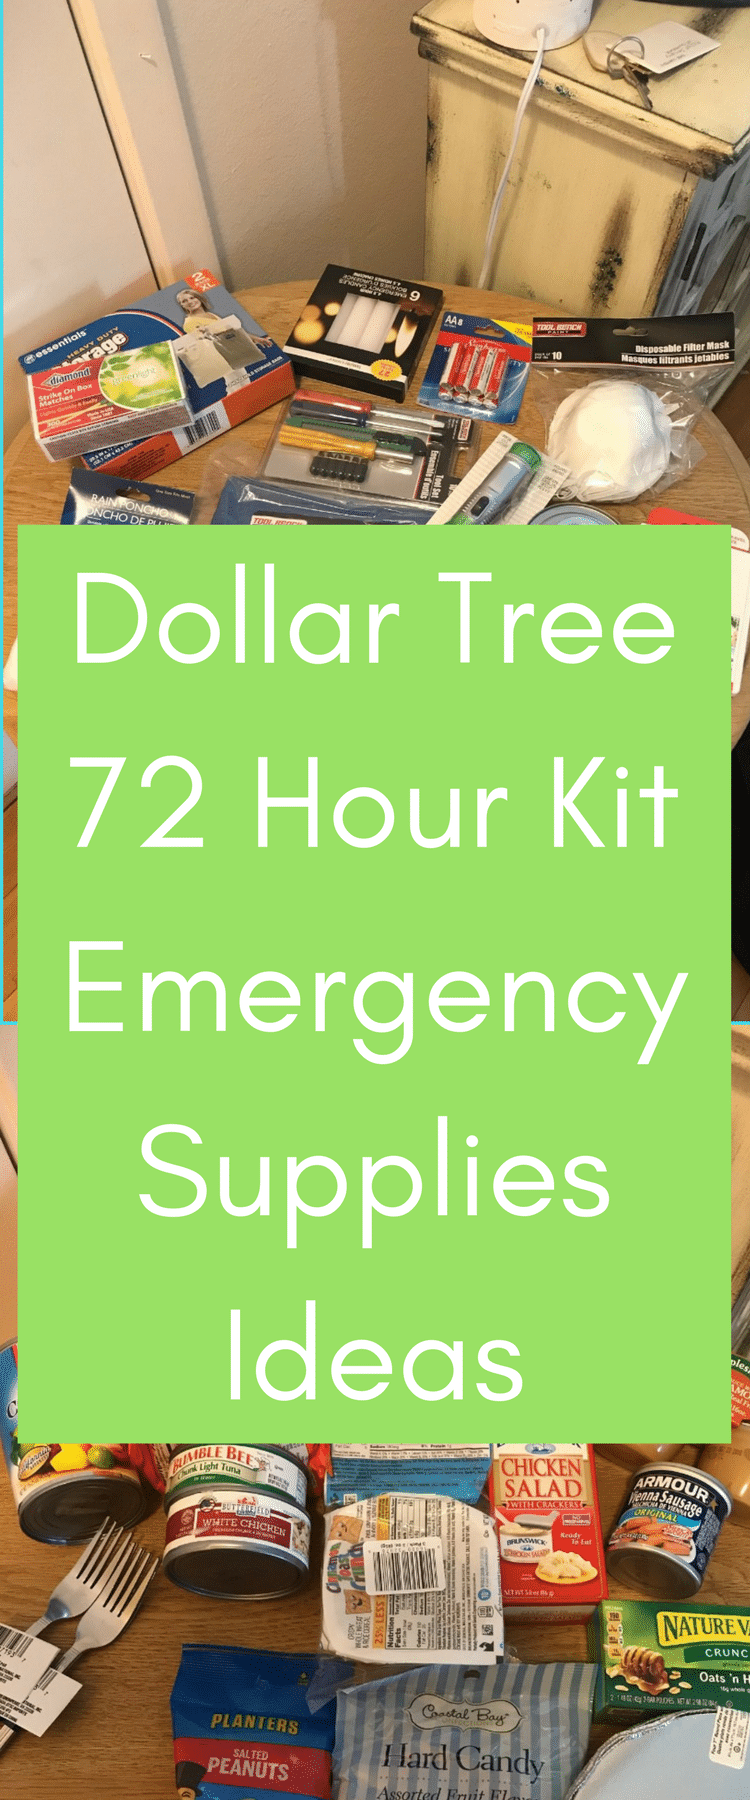 Dollar Tree 72 Hour Kit / Dollar Tree Ideas / Dollar Tree Emergency Supplies / Emergency Prep / 72 Hour kit